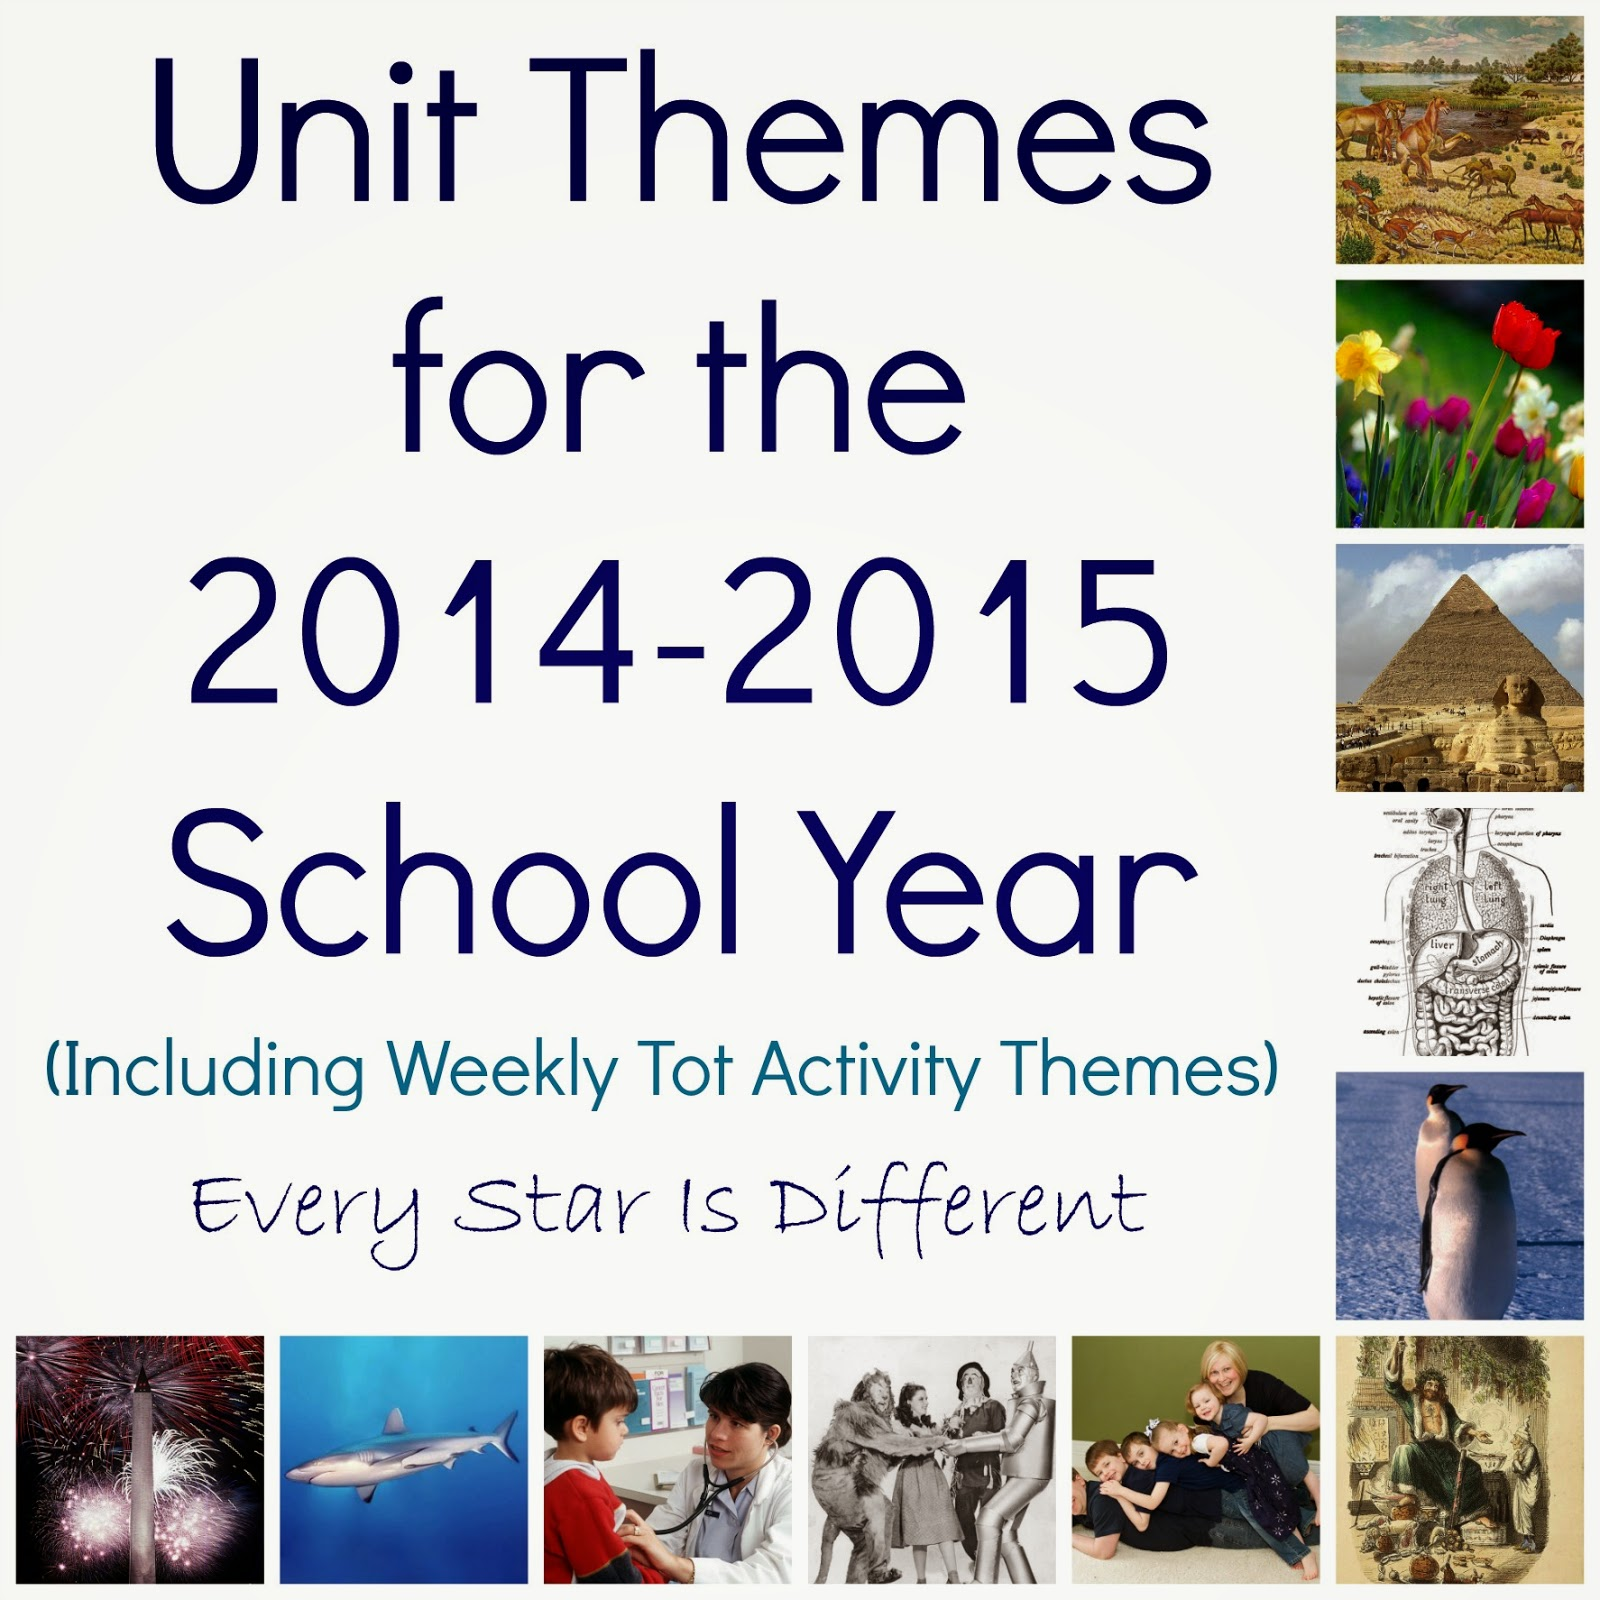 Unit Themes for the 2014-2015 School Year